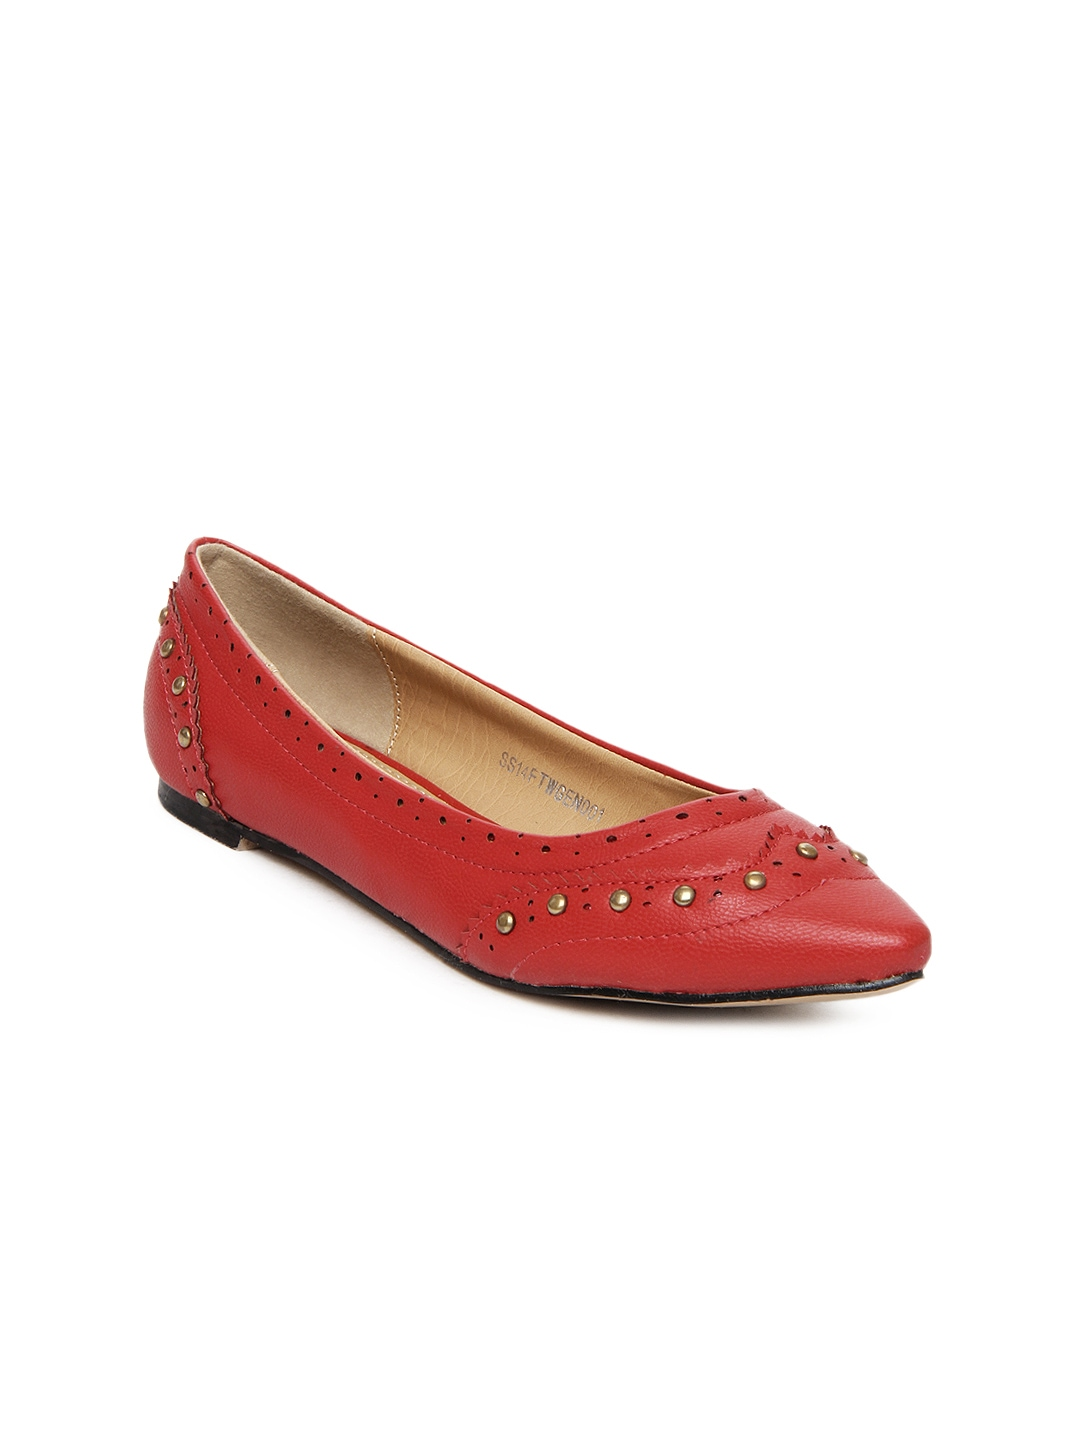 Ladies Flat Red Shoes - results from brands Trotters, Easy Street, Jambu, products like KURU Womens Vienna Flats Plantar Fasciitis Shoes - Red, French Sole Sloop Flat (Red Suede) Women's Flat Shoes, Women's Gentle Souls Dana Ballet Flat, Women's Shoes.